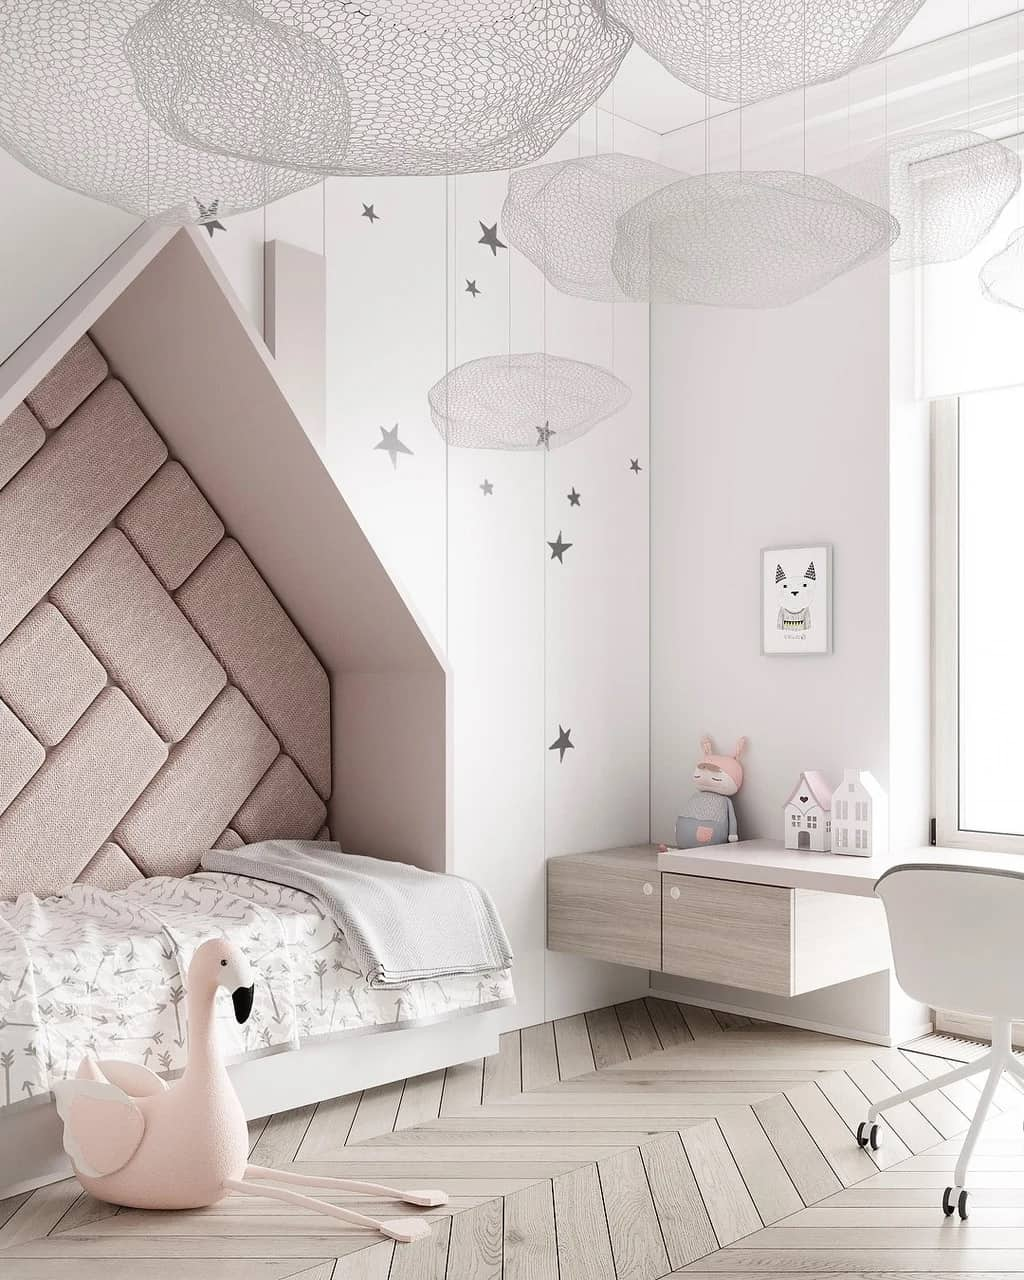 3 Things to Consider when Designing a Kid's Room